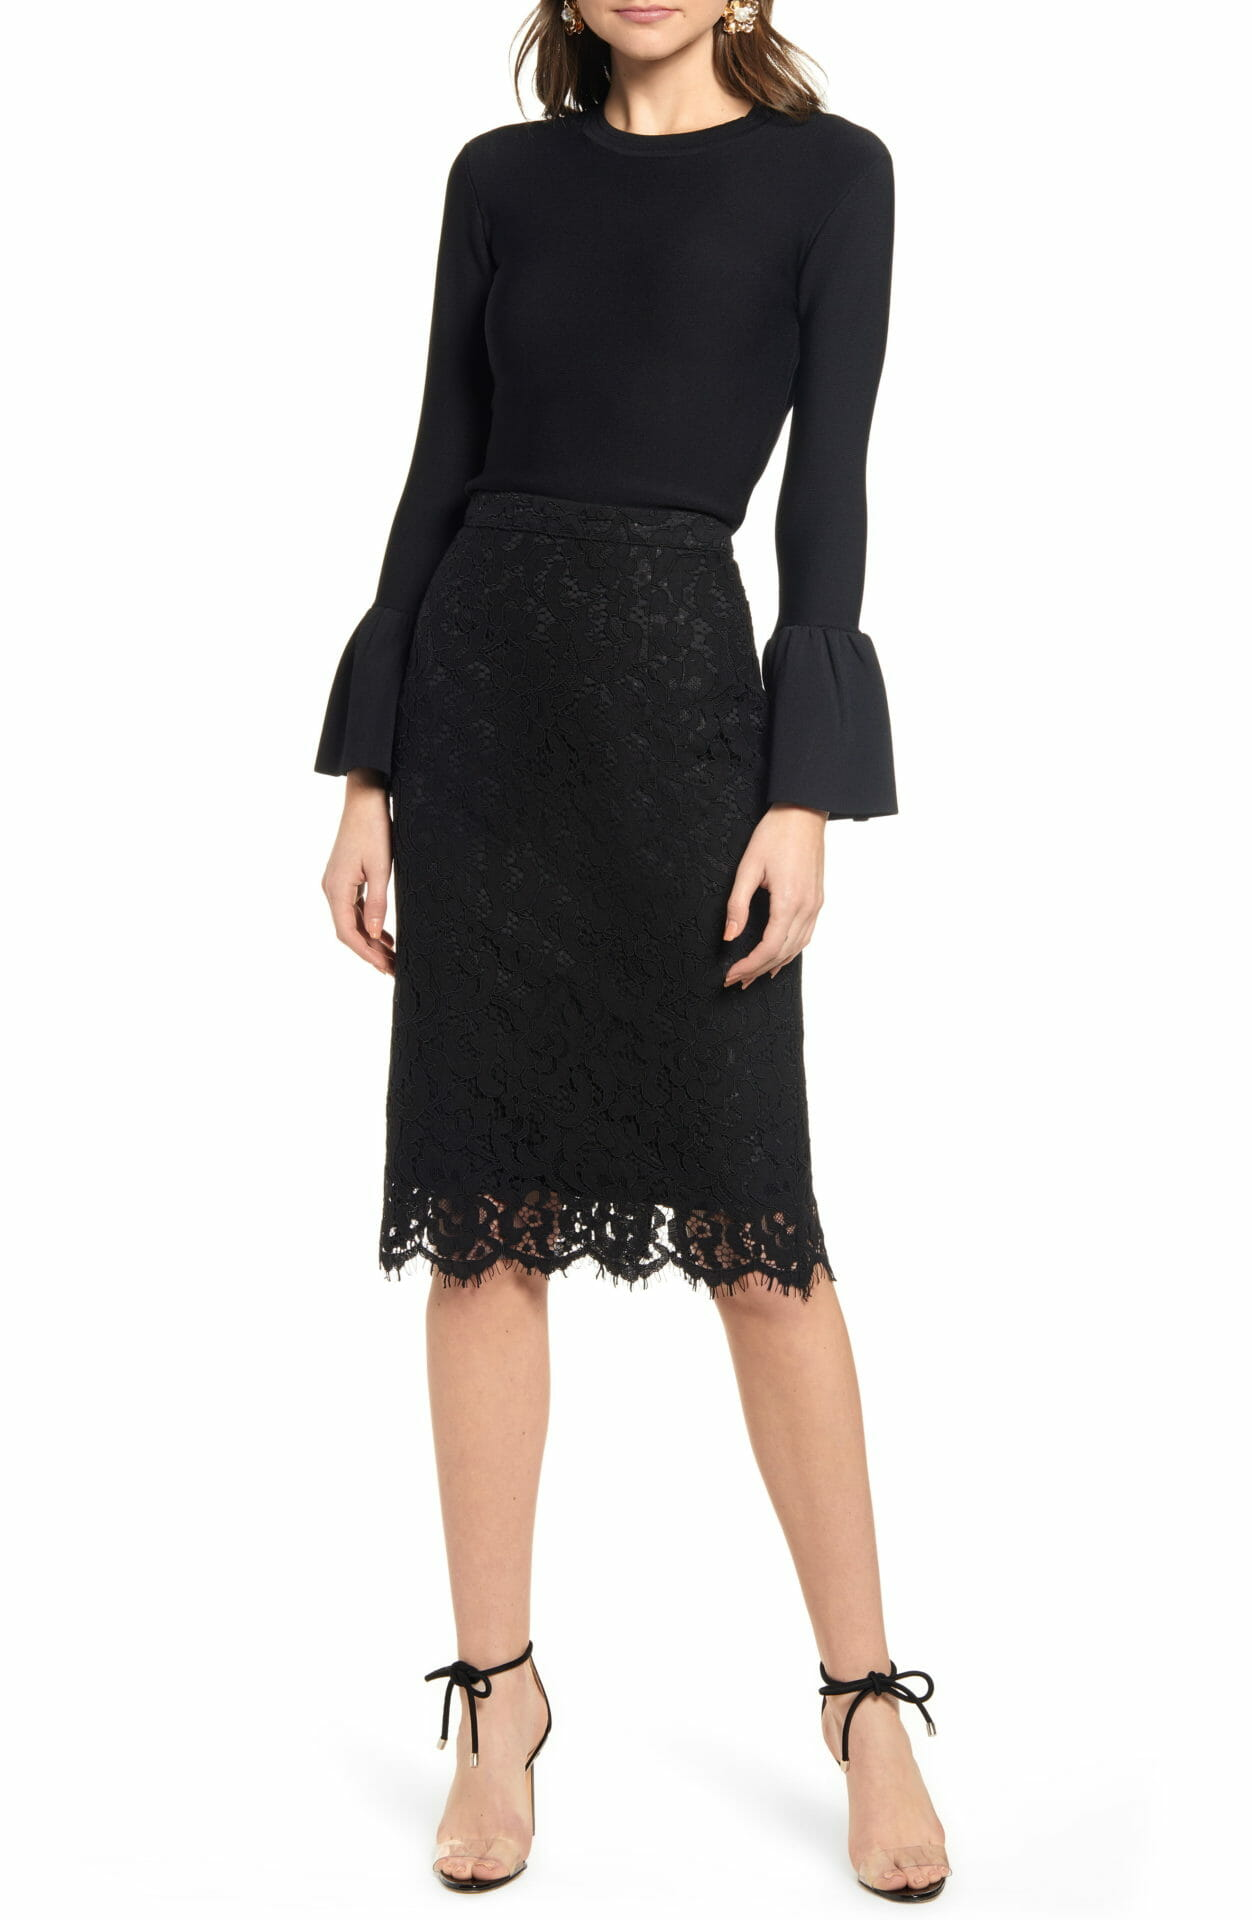 RACHEL PARCELL Lace Pencil Skirt, Main, color, BLACK